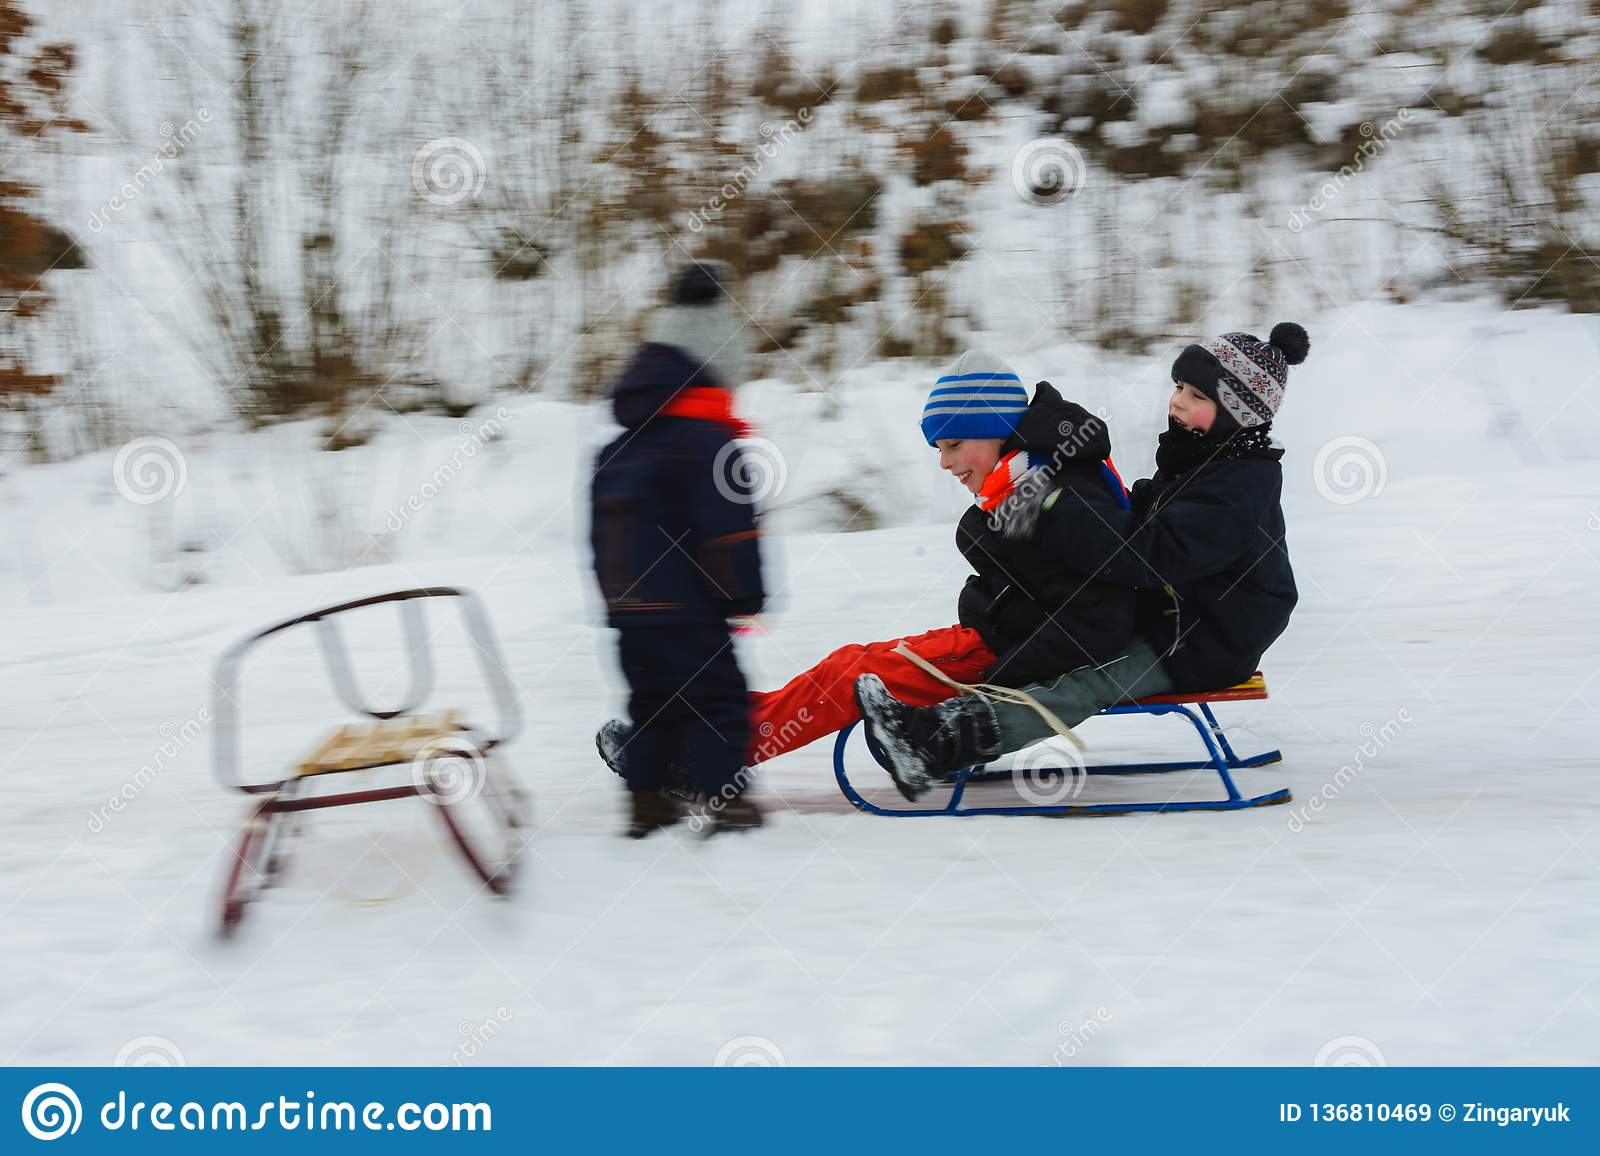 The two boys descend on sledges, and the girl waits for them, their movement is visible